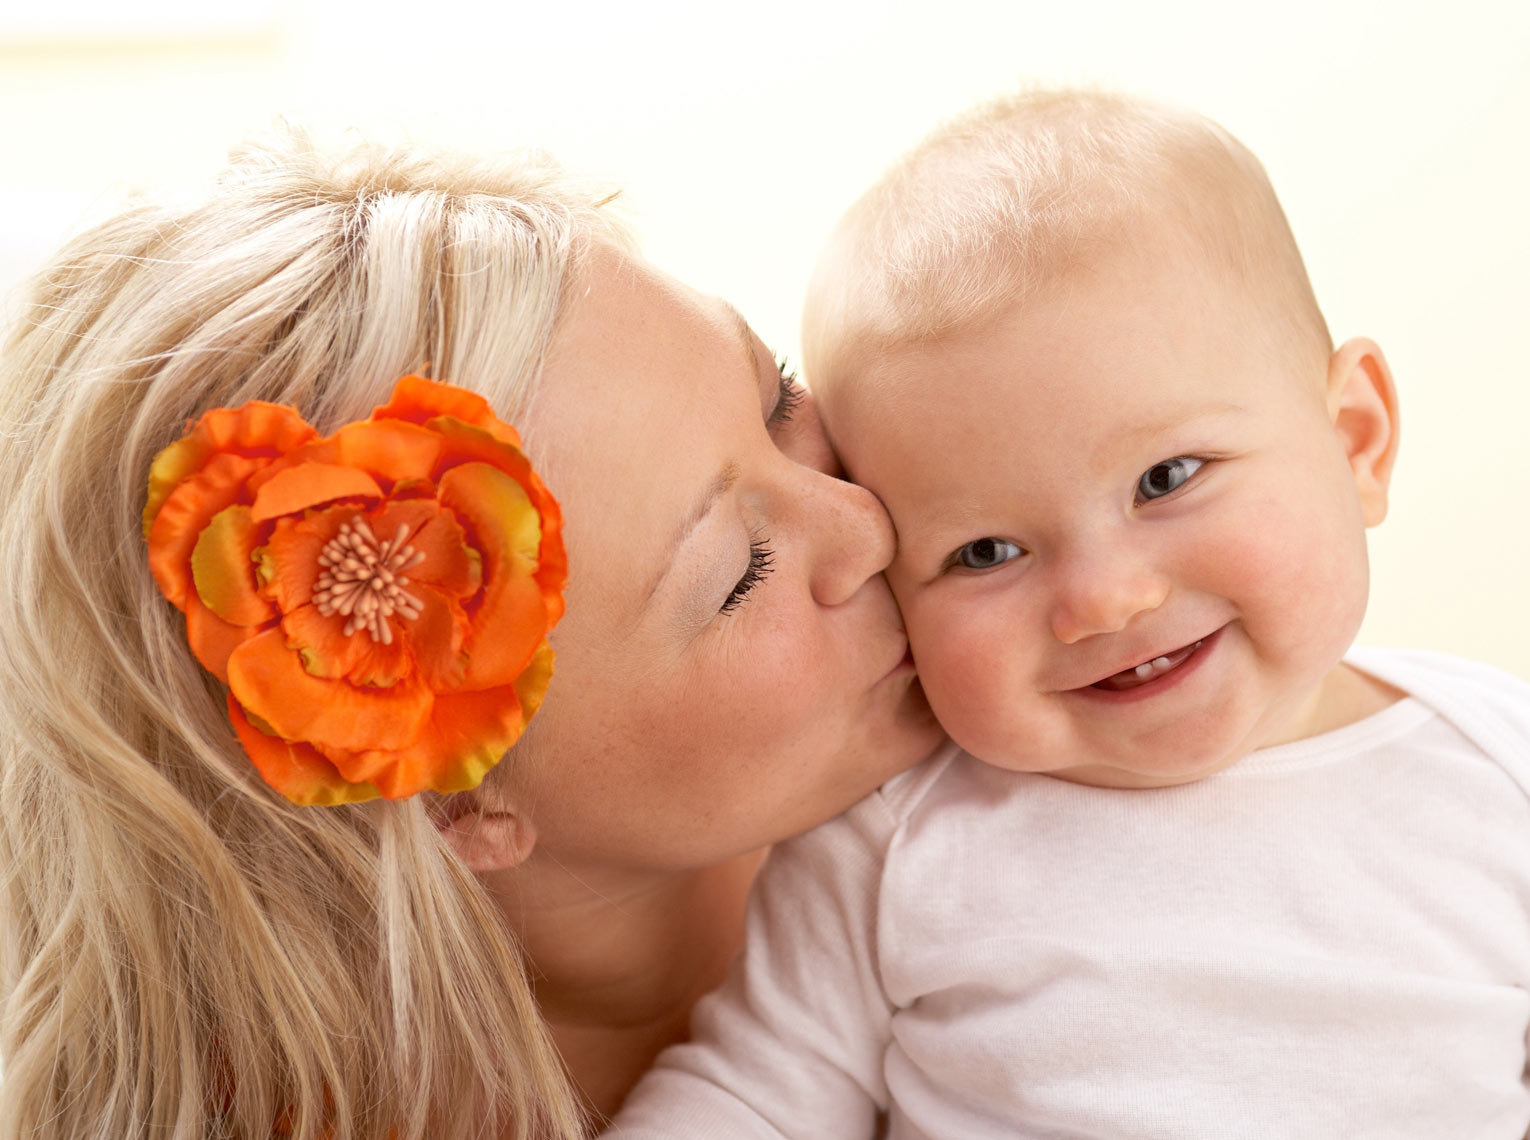 Halo/mom/baby/kissing cheek/lifestyle photo